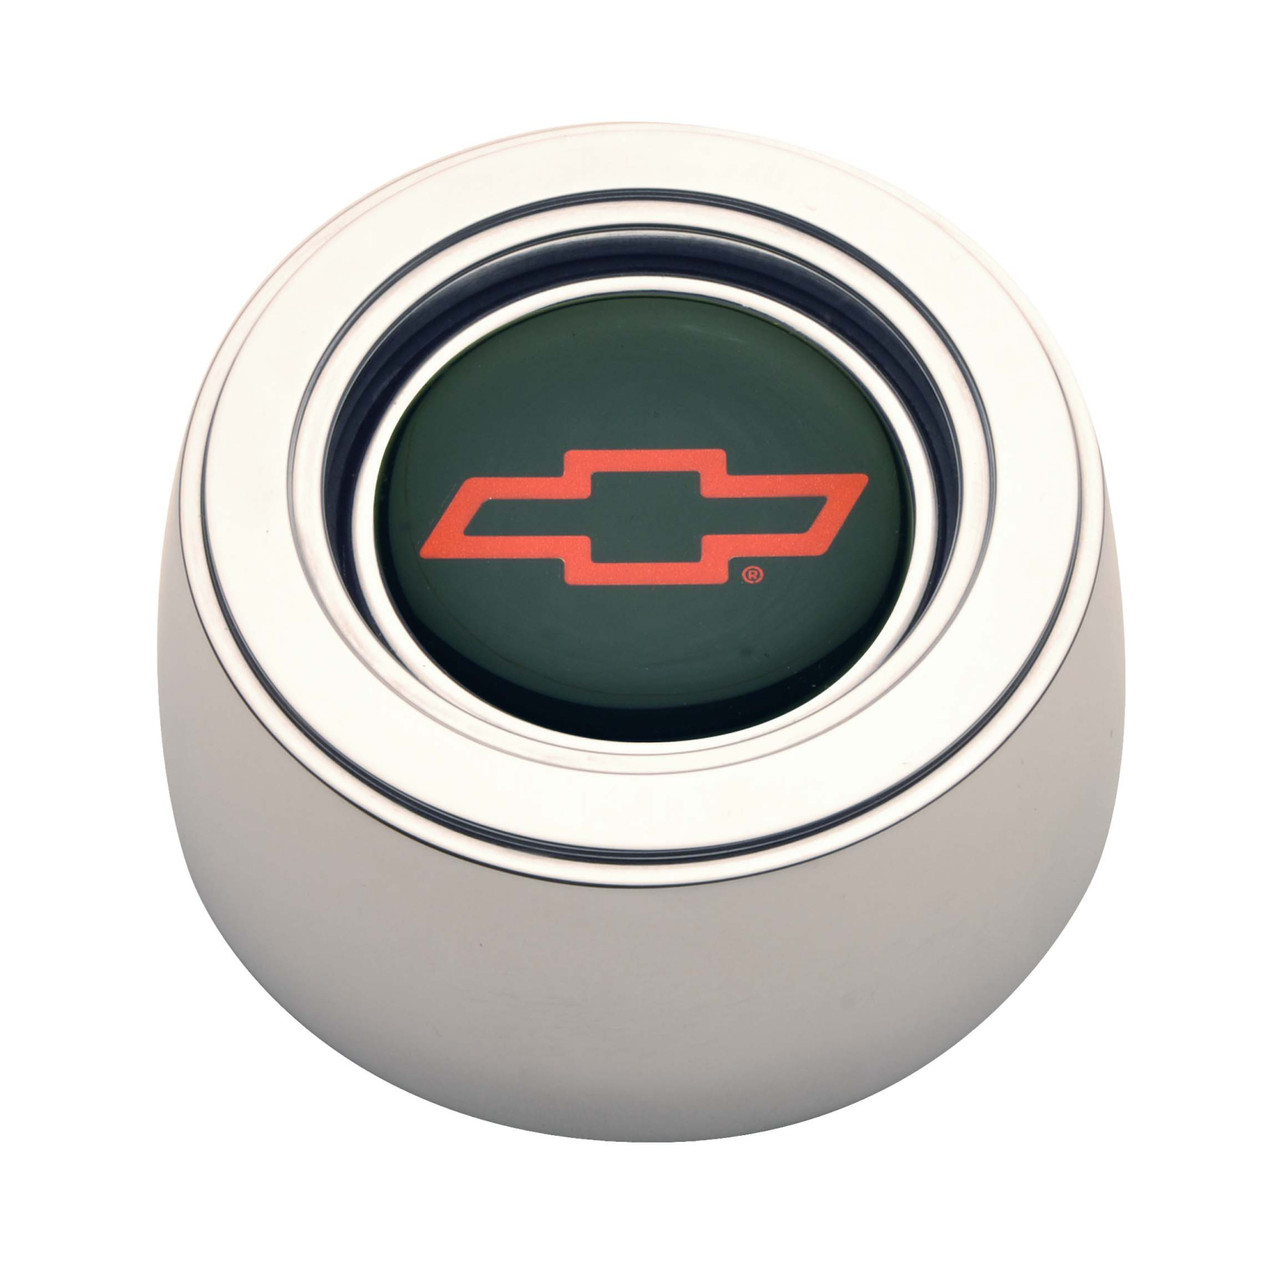 GT Performance GT3 Hi-Rise Chevy Bowtie Colored Horn Button, Polished